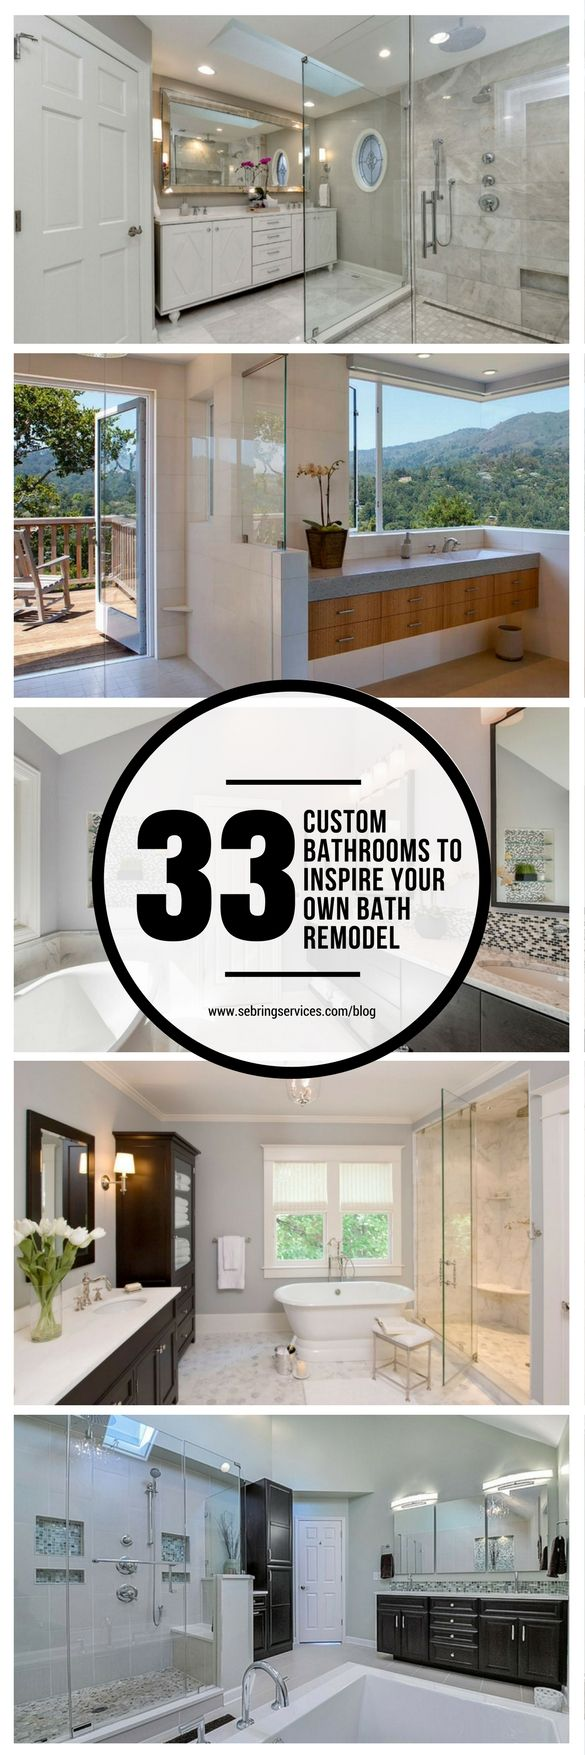 Custom bathroom designs - 33 Custom Bathrooms To Inspire Your Own Bath Remodel